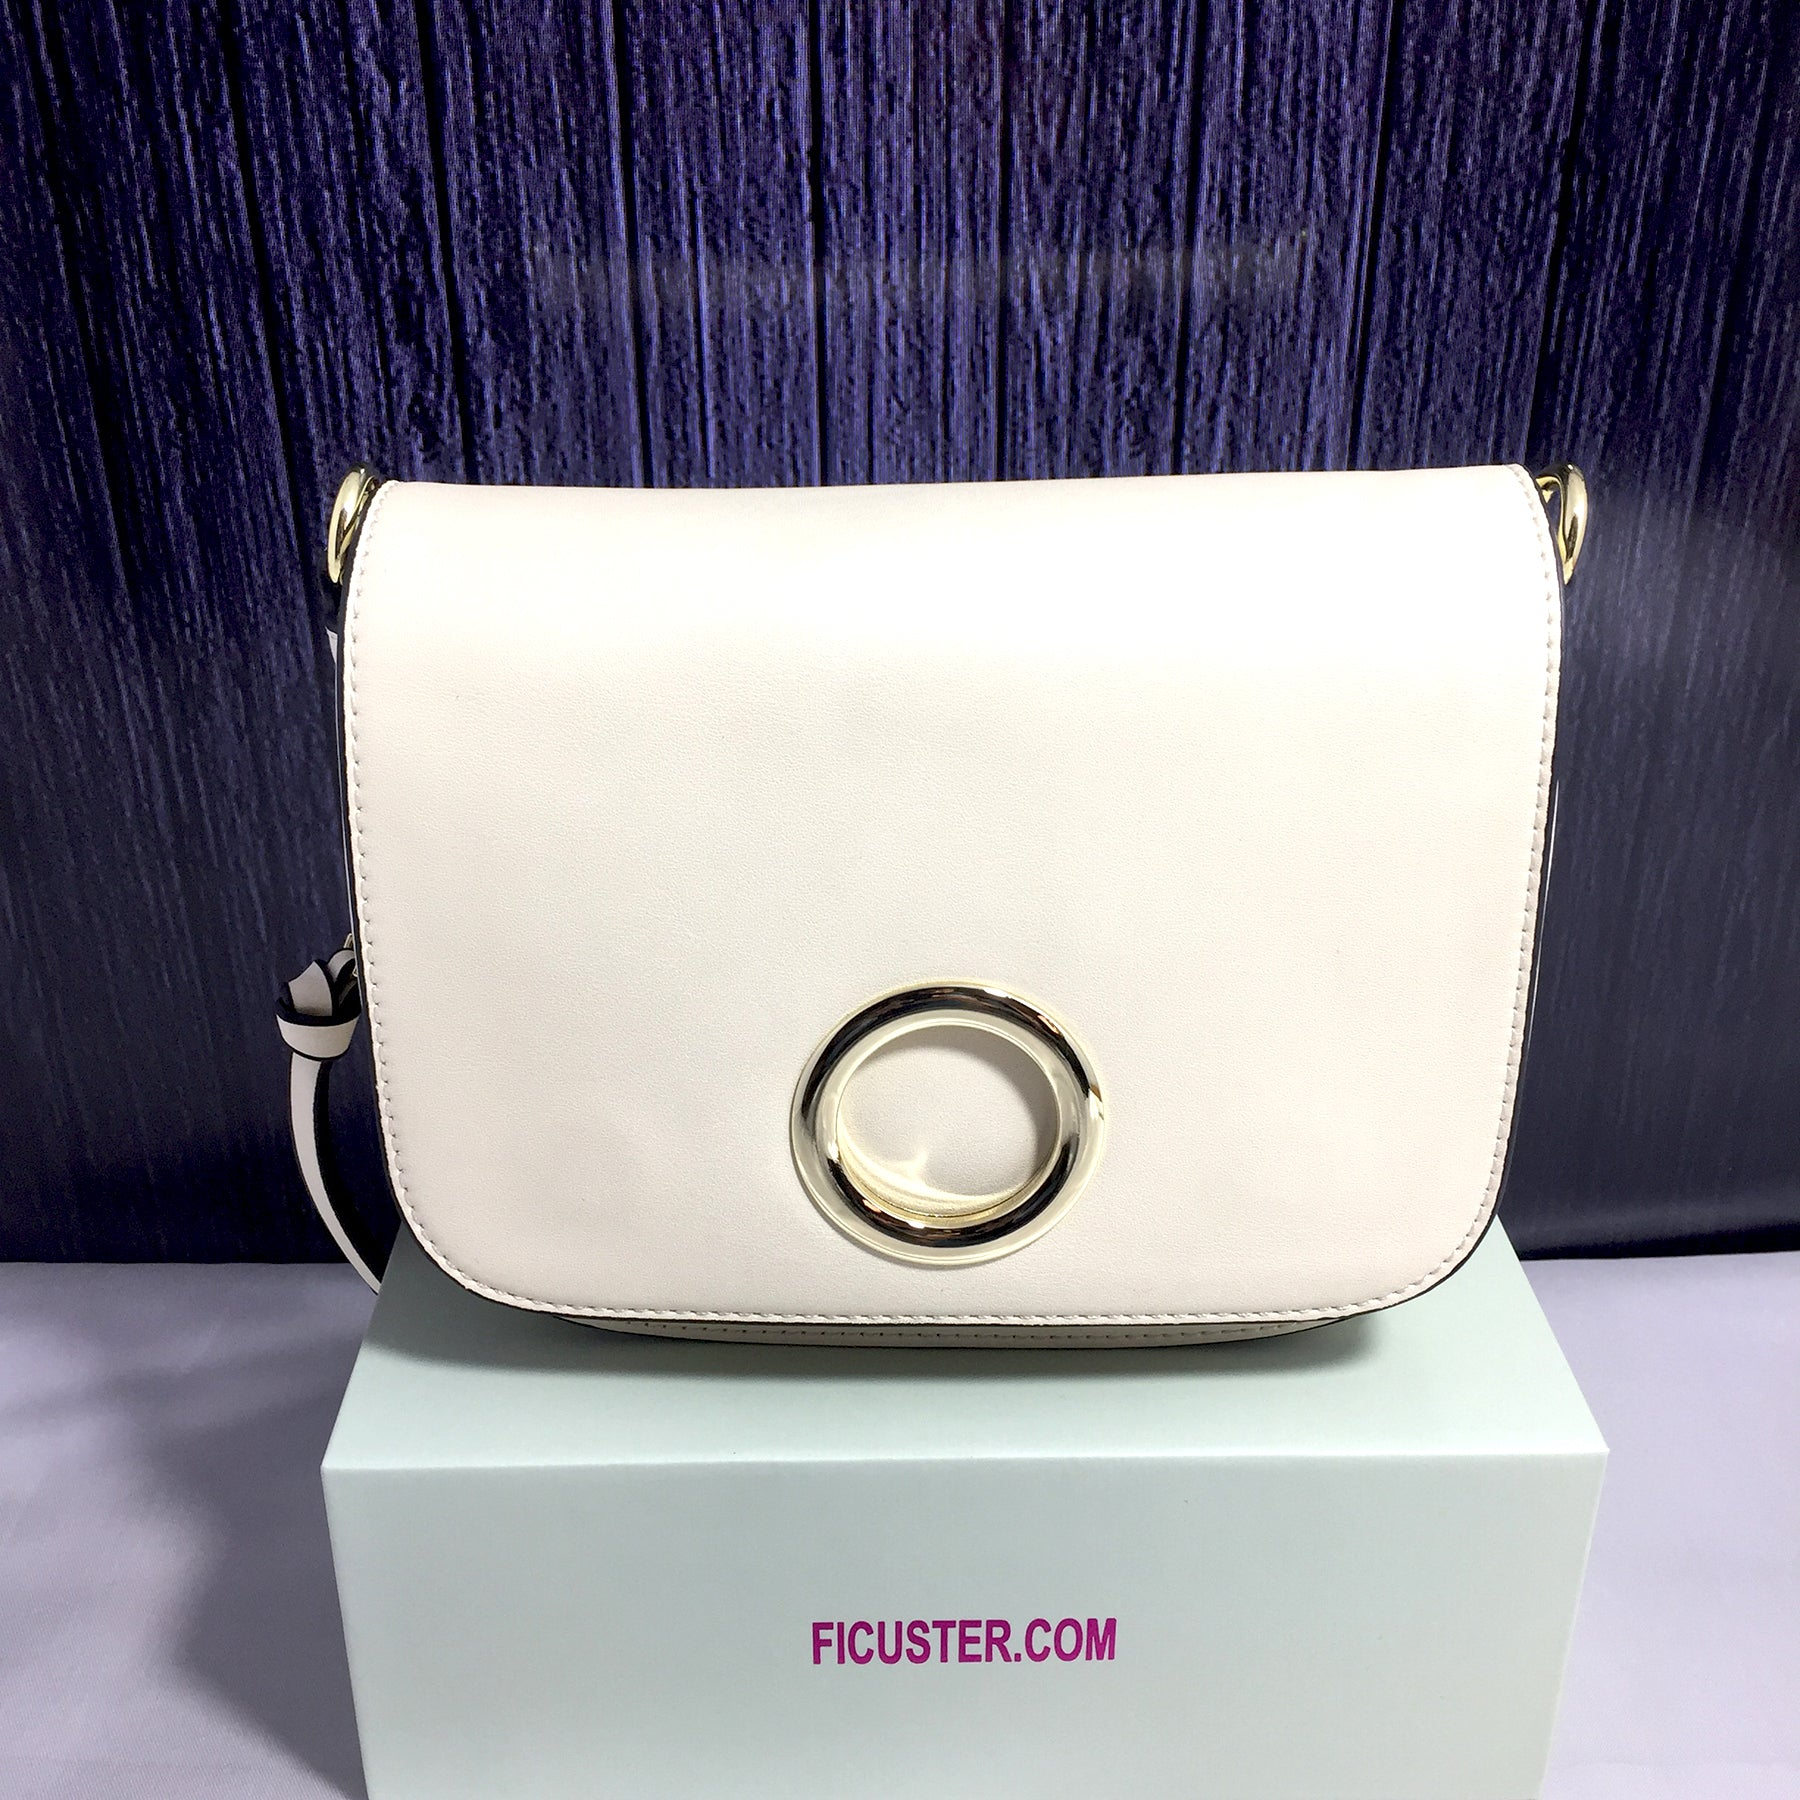 Ficuster Solid White Sling Bag